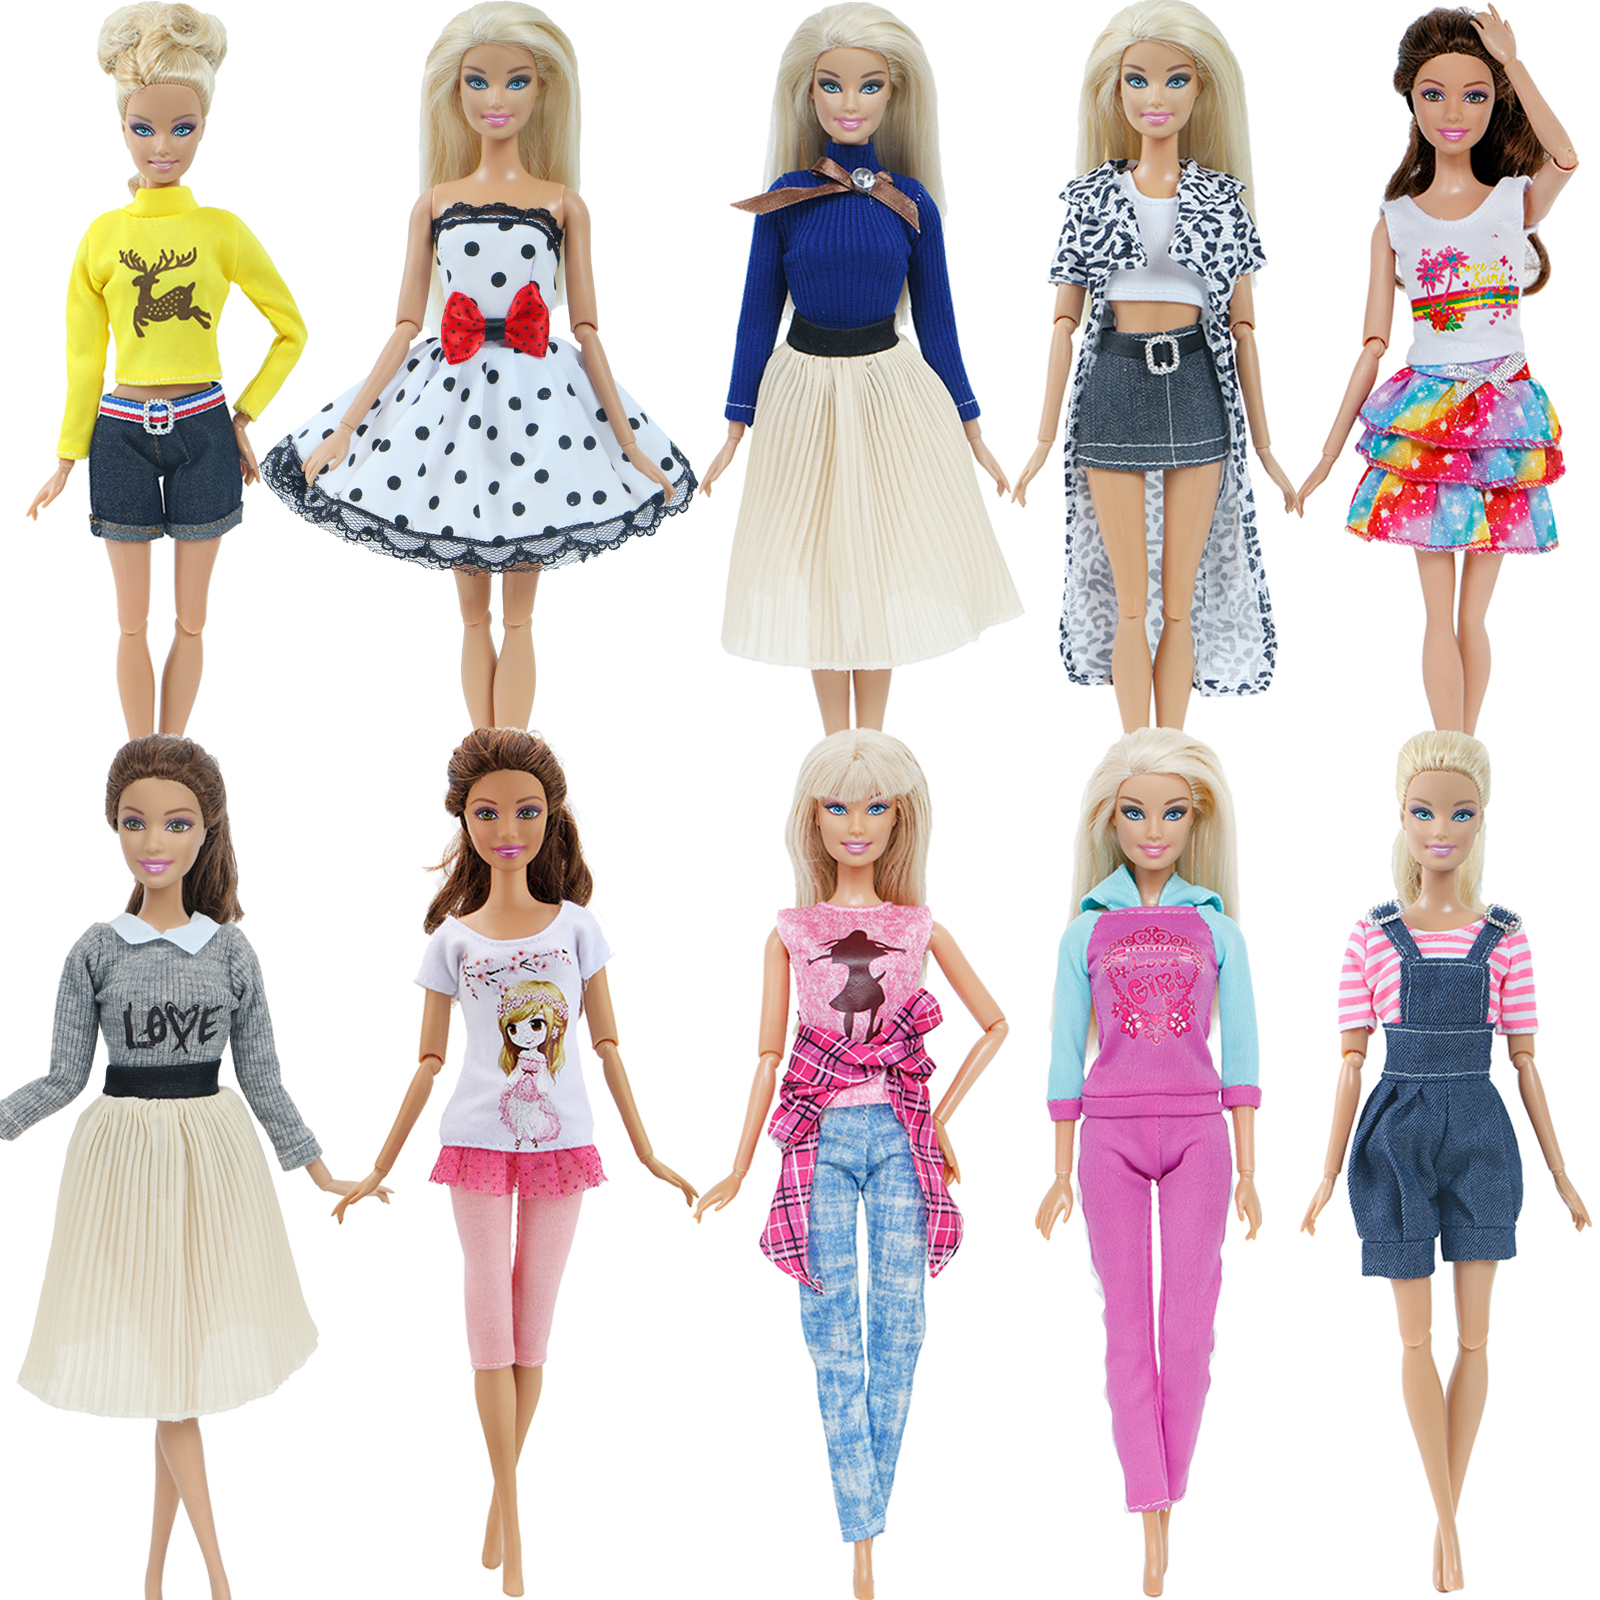 One Set Fashion Doll Clothes Dress Daily Casual Wear Plaid Coat T-Shirt Pants Trousers Accessories Clothes For Barbie Doll Toy